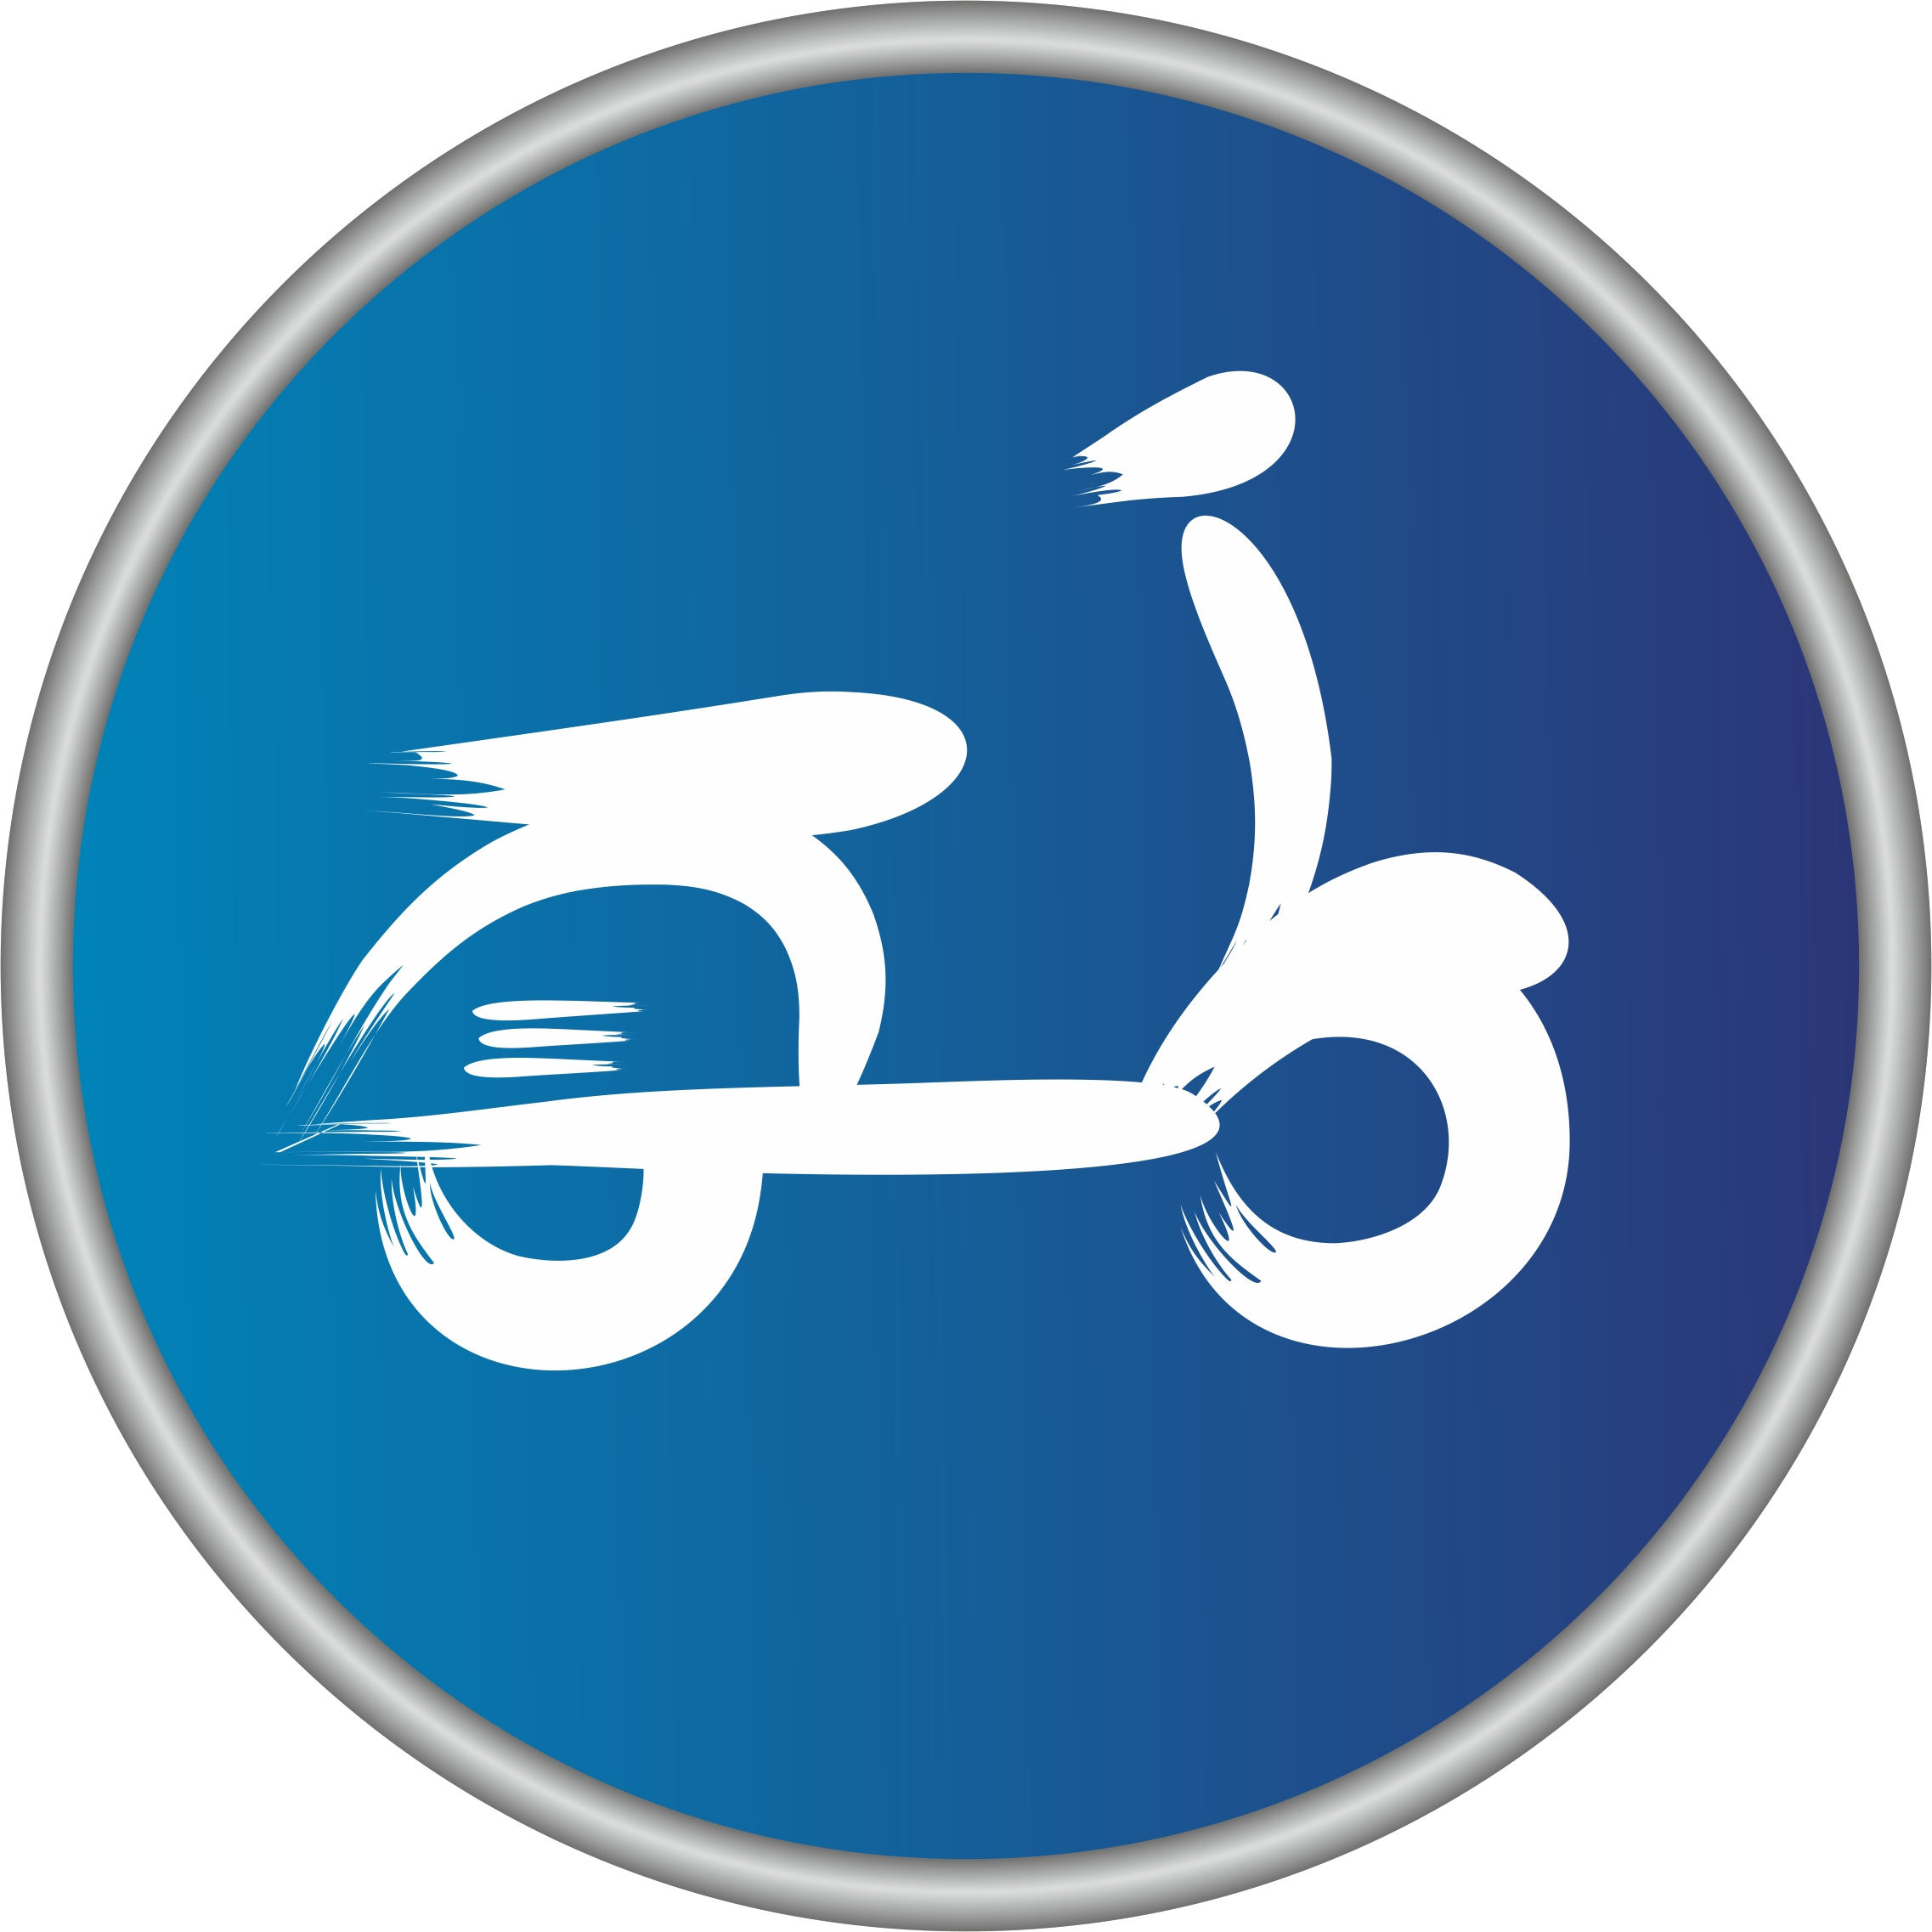 203884668  E4 BF 9D E6 99 82 E6 8D B7 as well Show further Logo escola scooter together with Wallpaper 8a together with Halo Blue Glow Wallpaper. on porsche logo